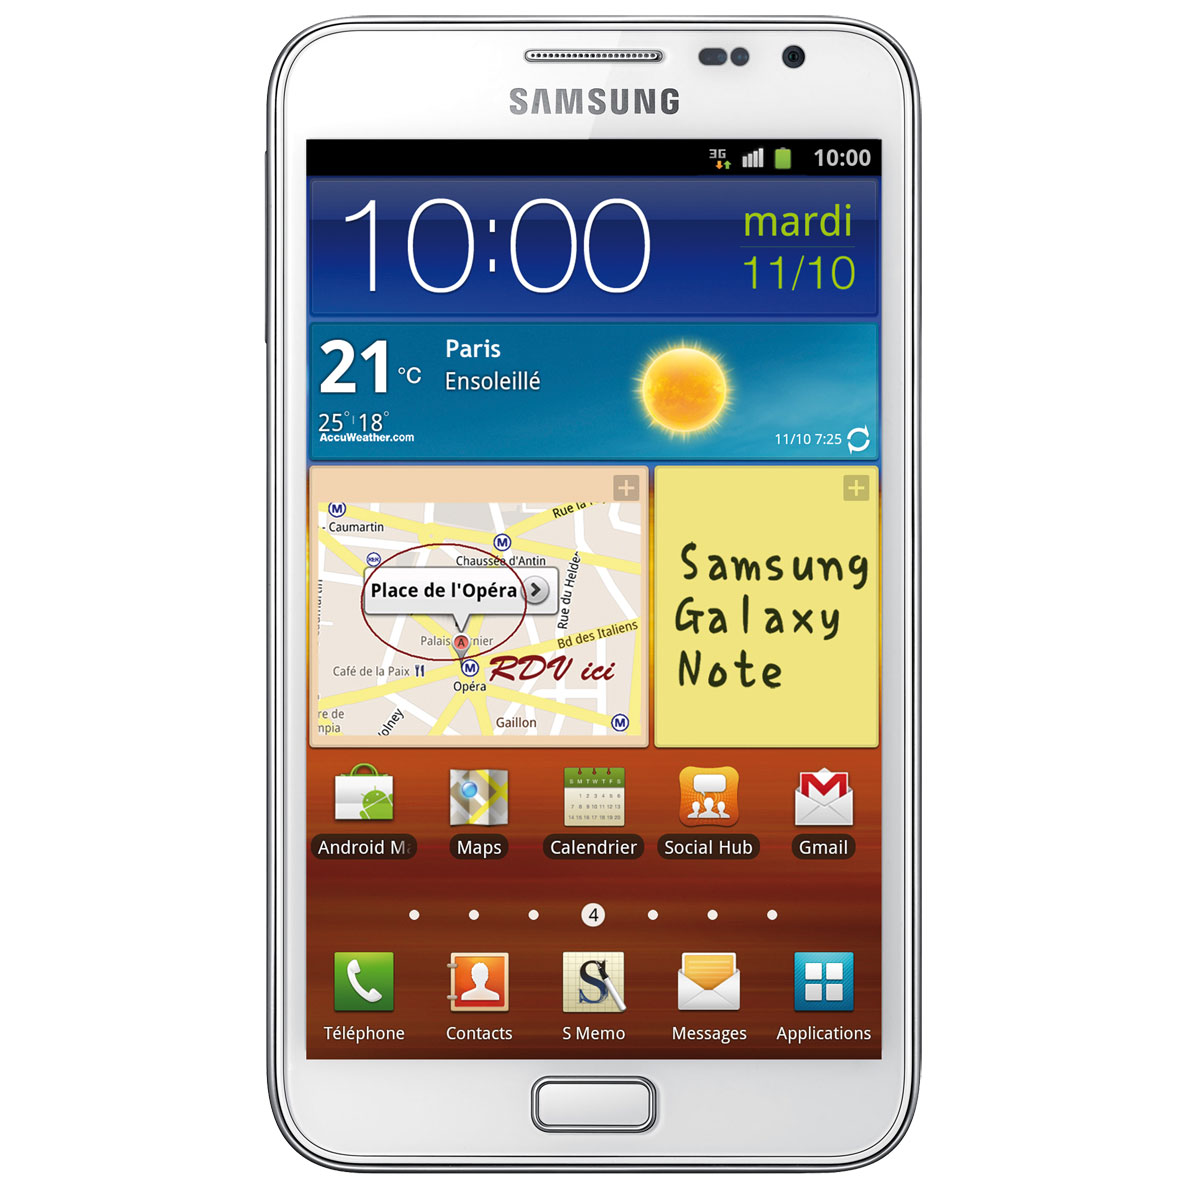 samsung galaxy note gt n7000 blanc mobile smartphone samsung sur. Black Bedroom Furniture Sets. Home Design Ideas